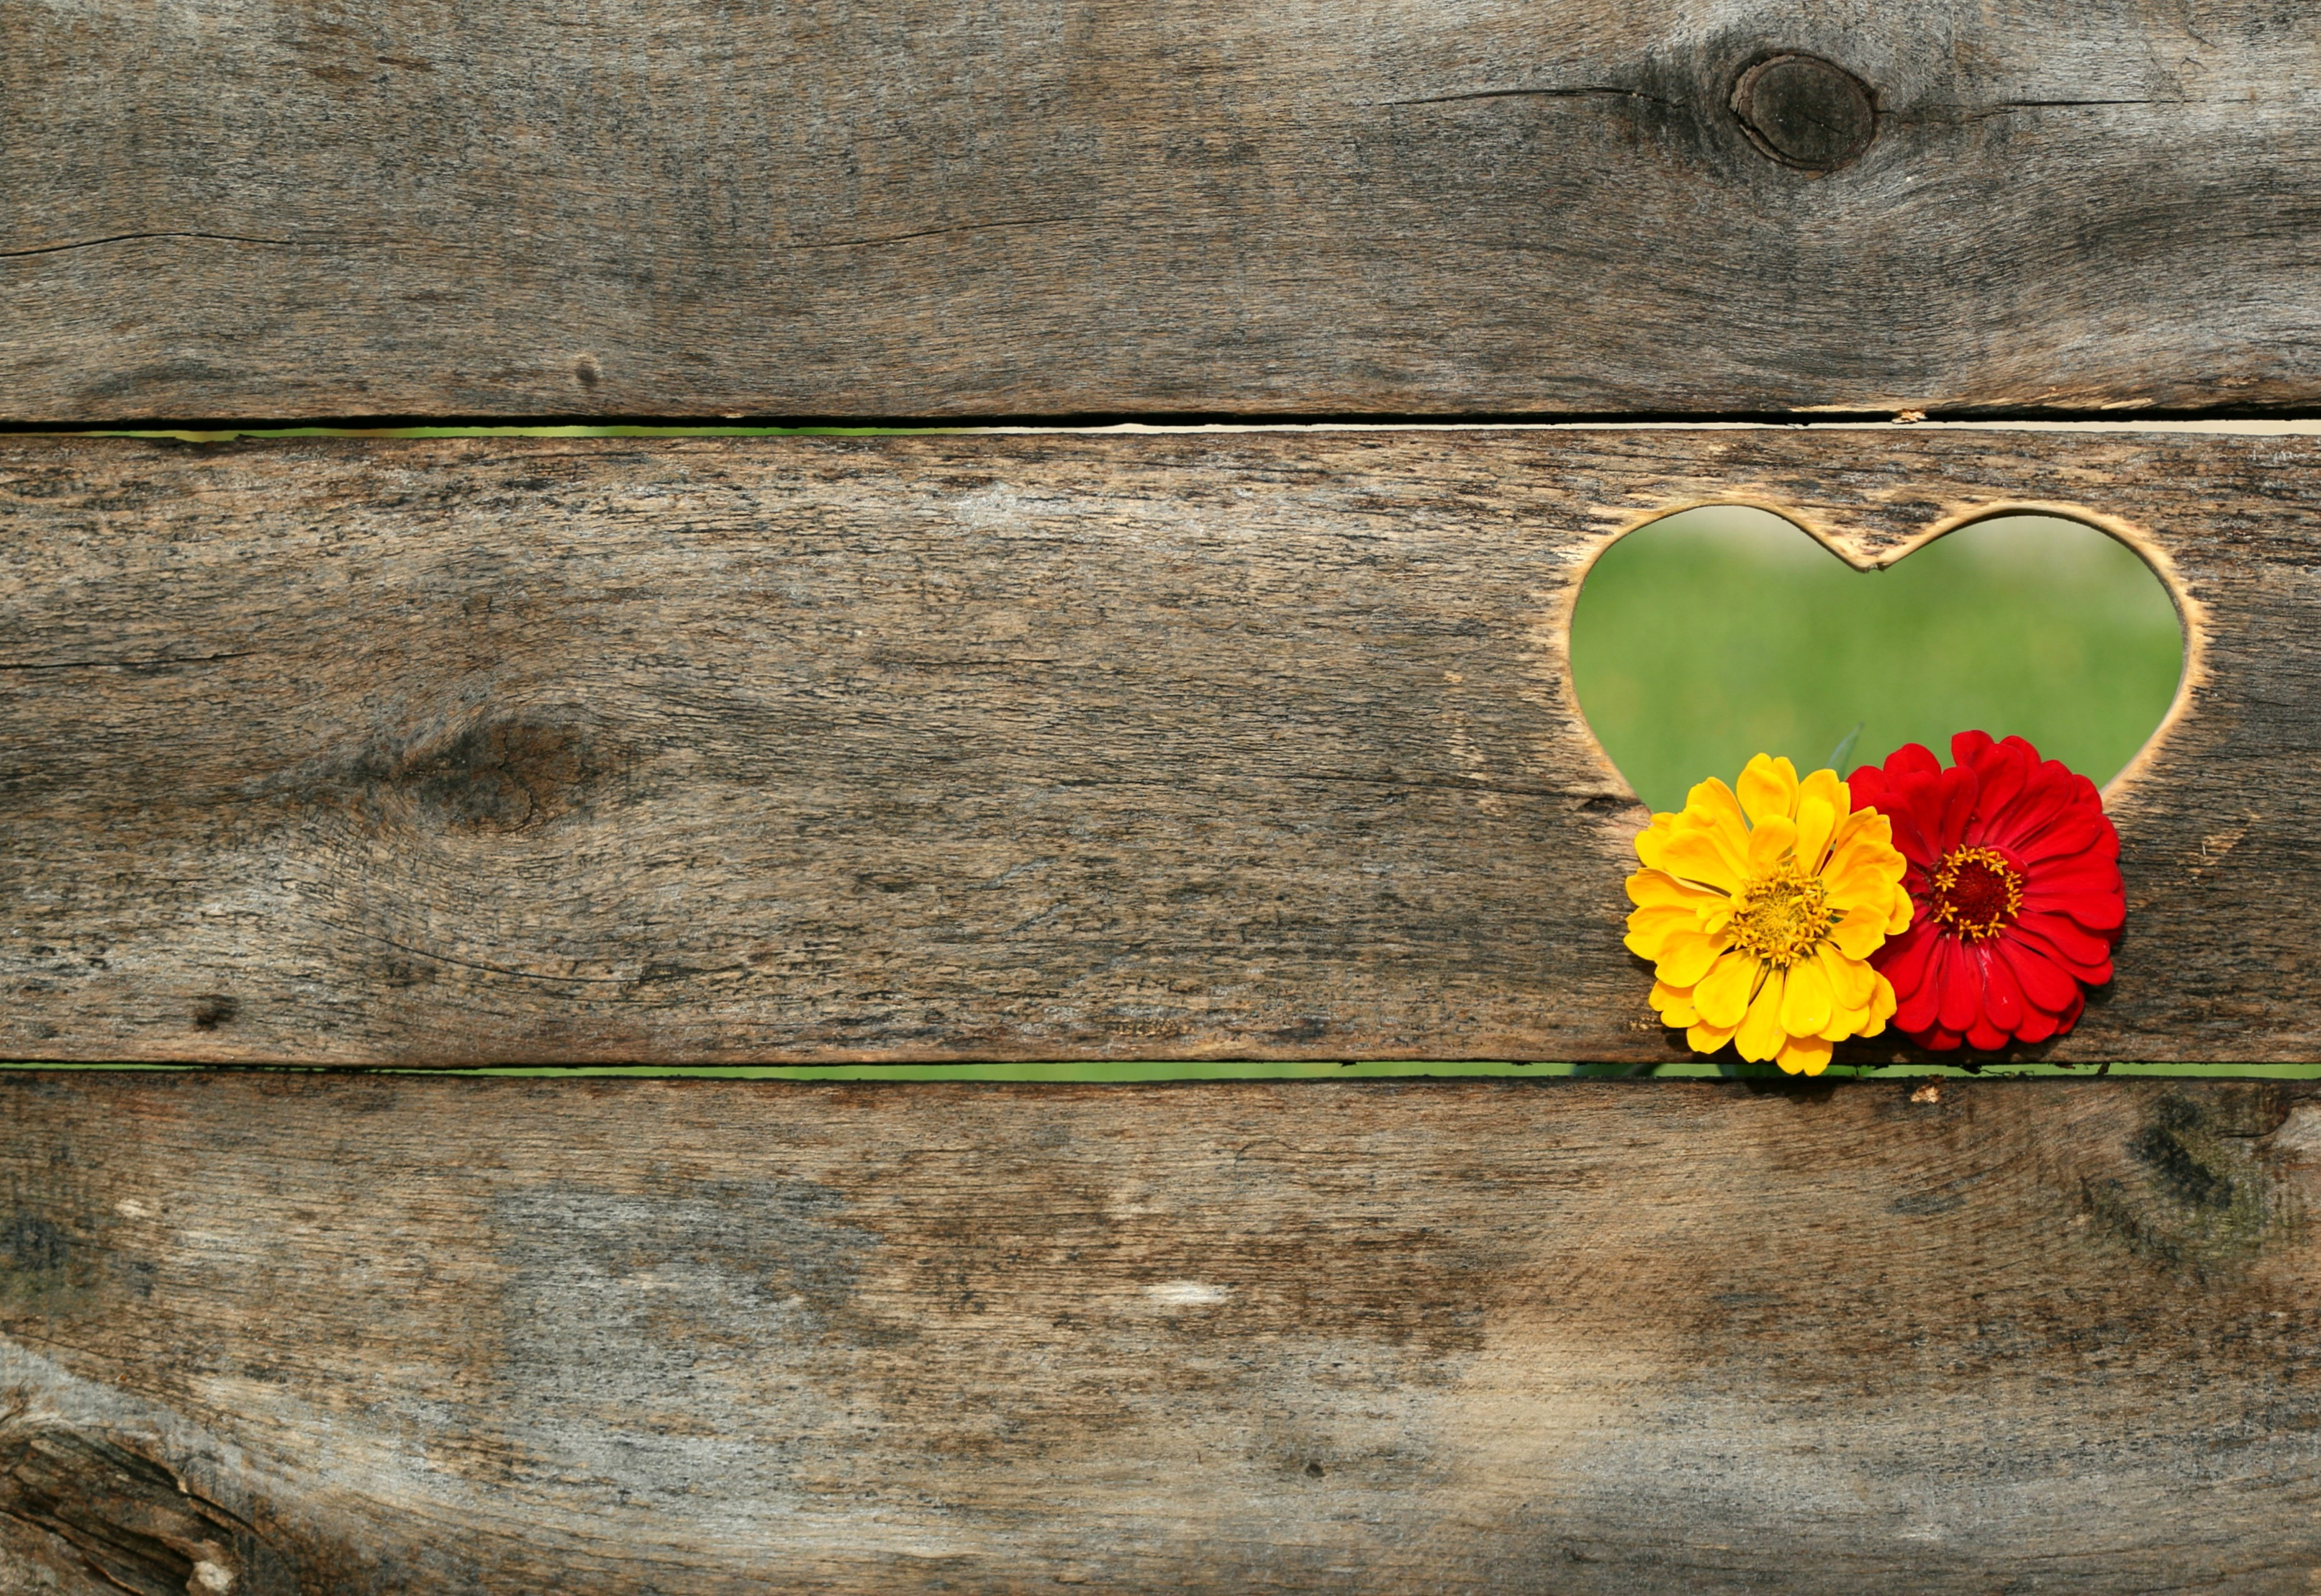 postcard-heart-flowers-board-158635.jpeg (3225×2218)